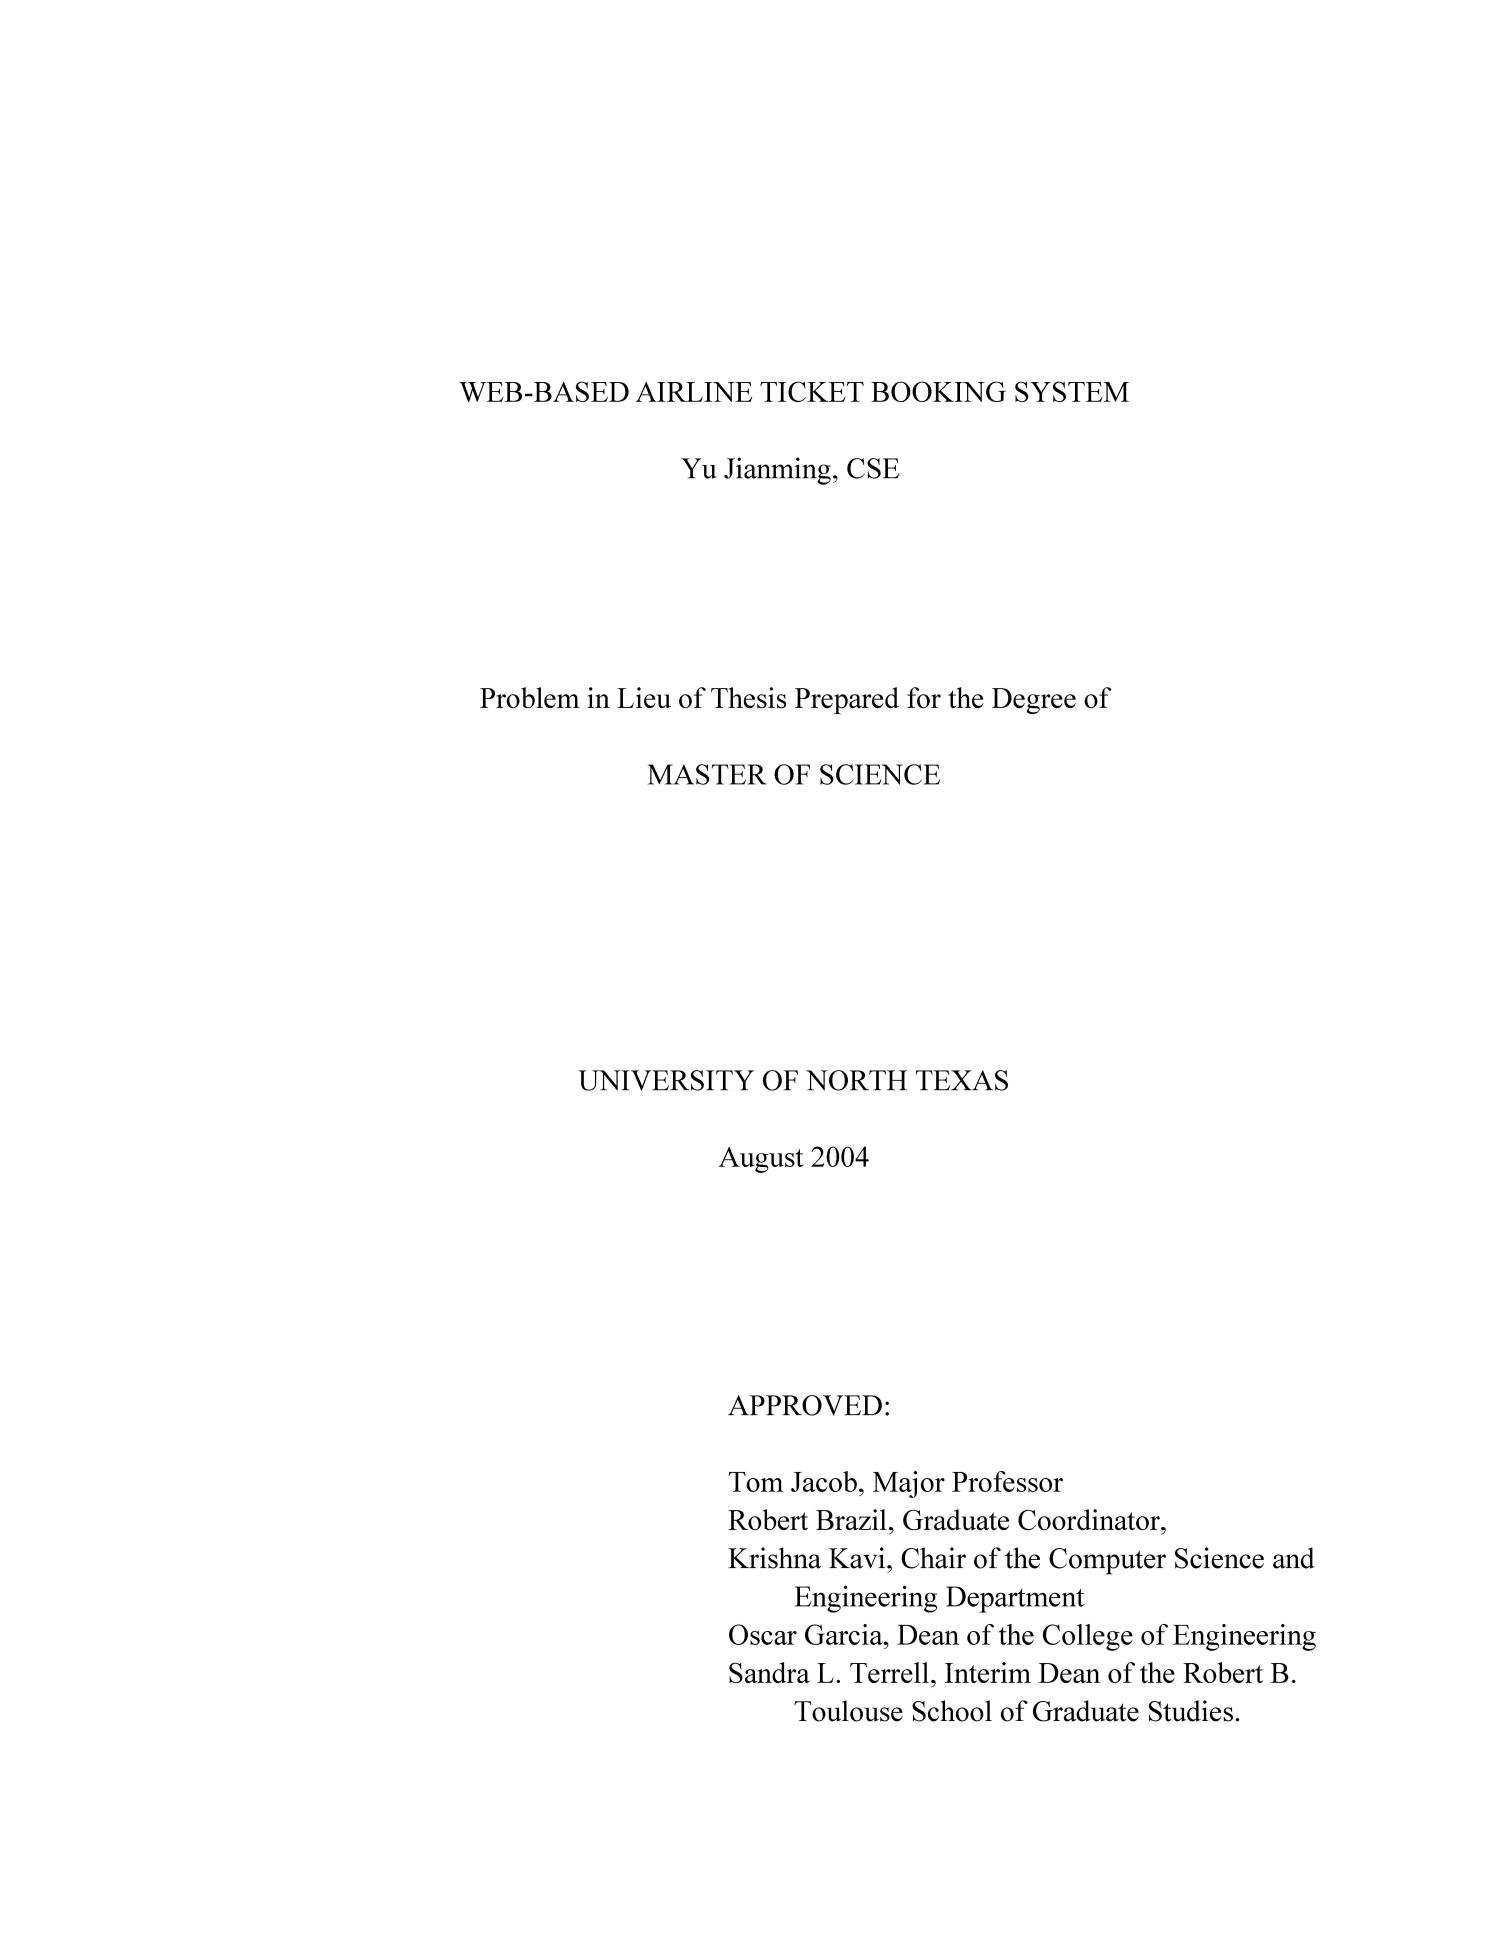 Education data mining phd thesis